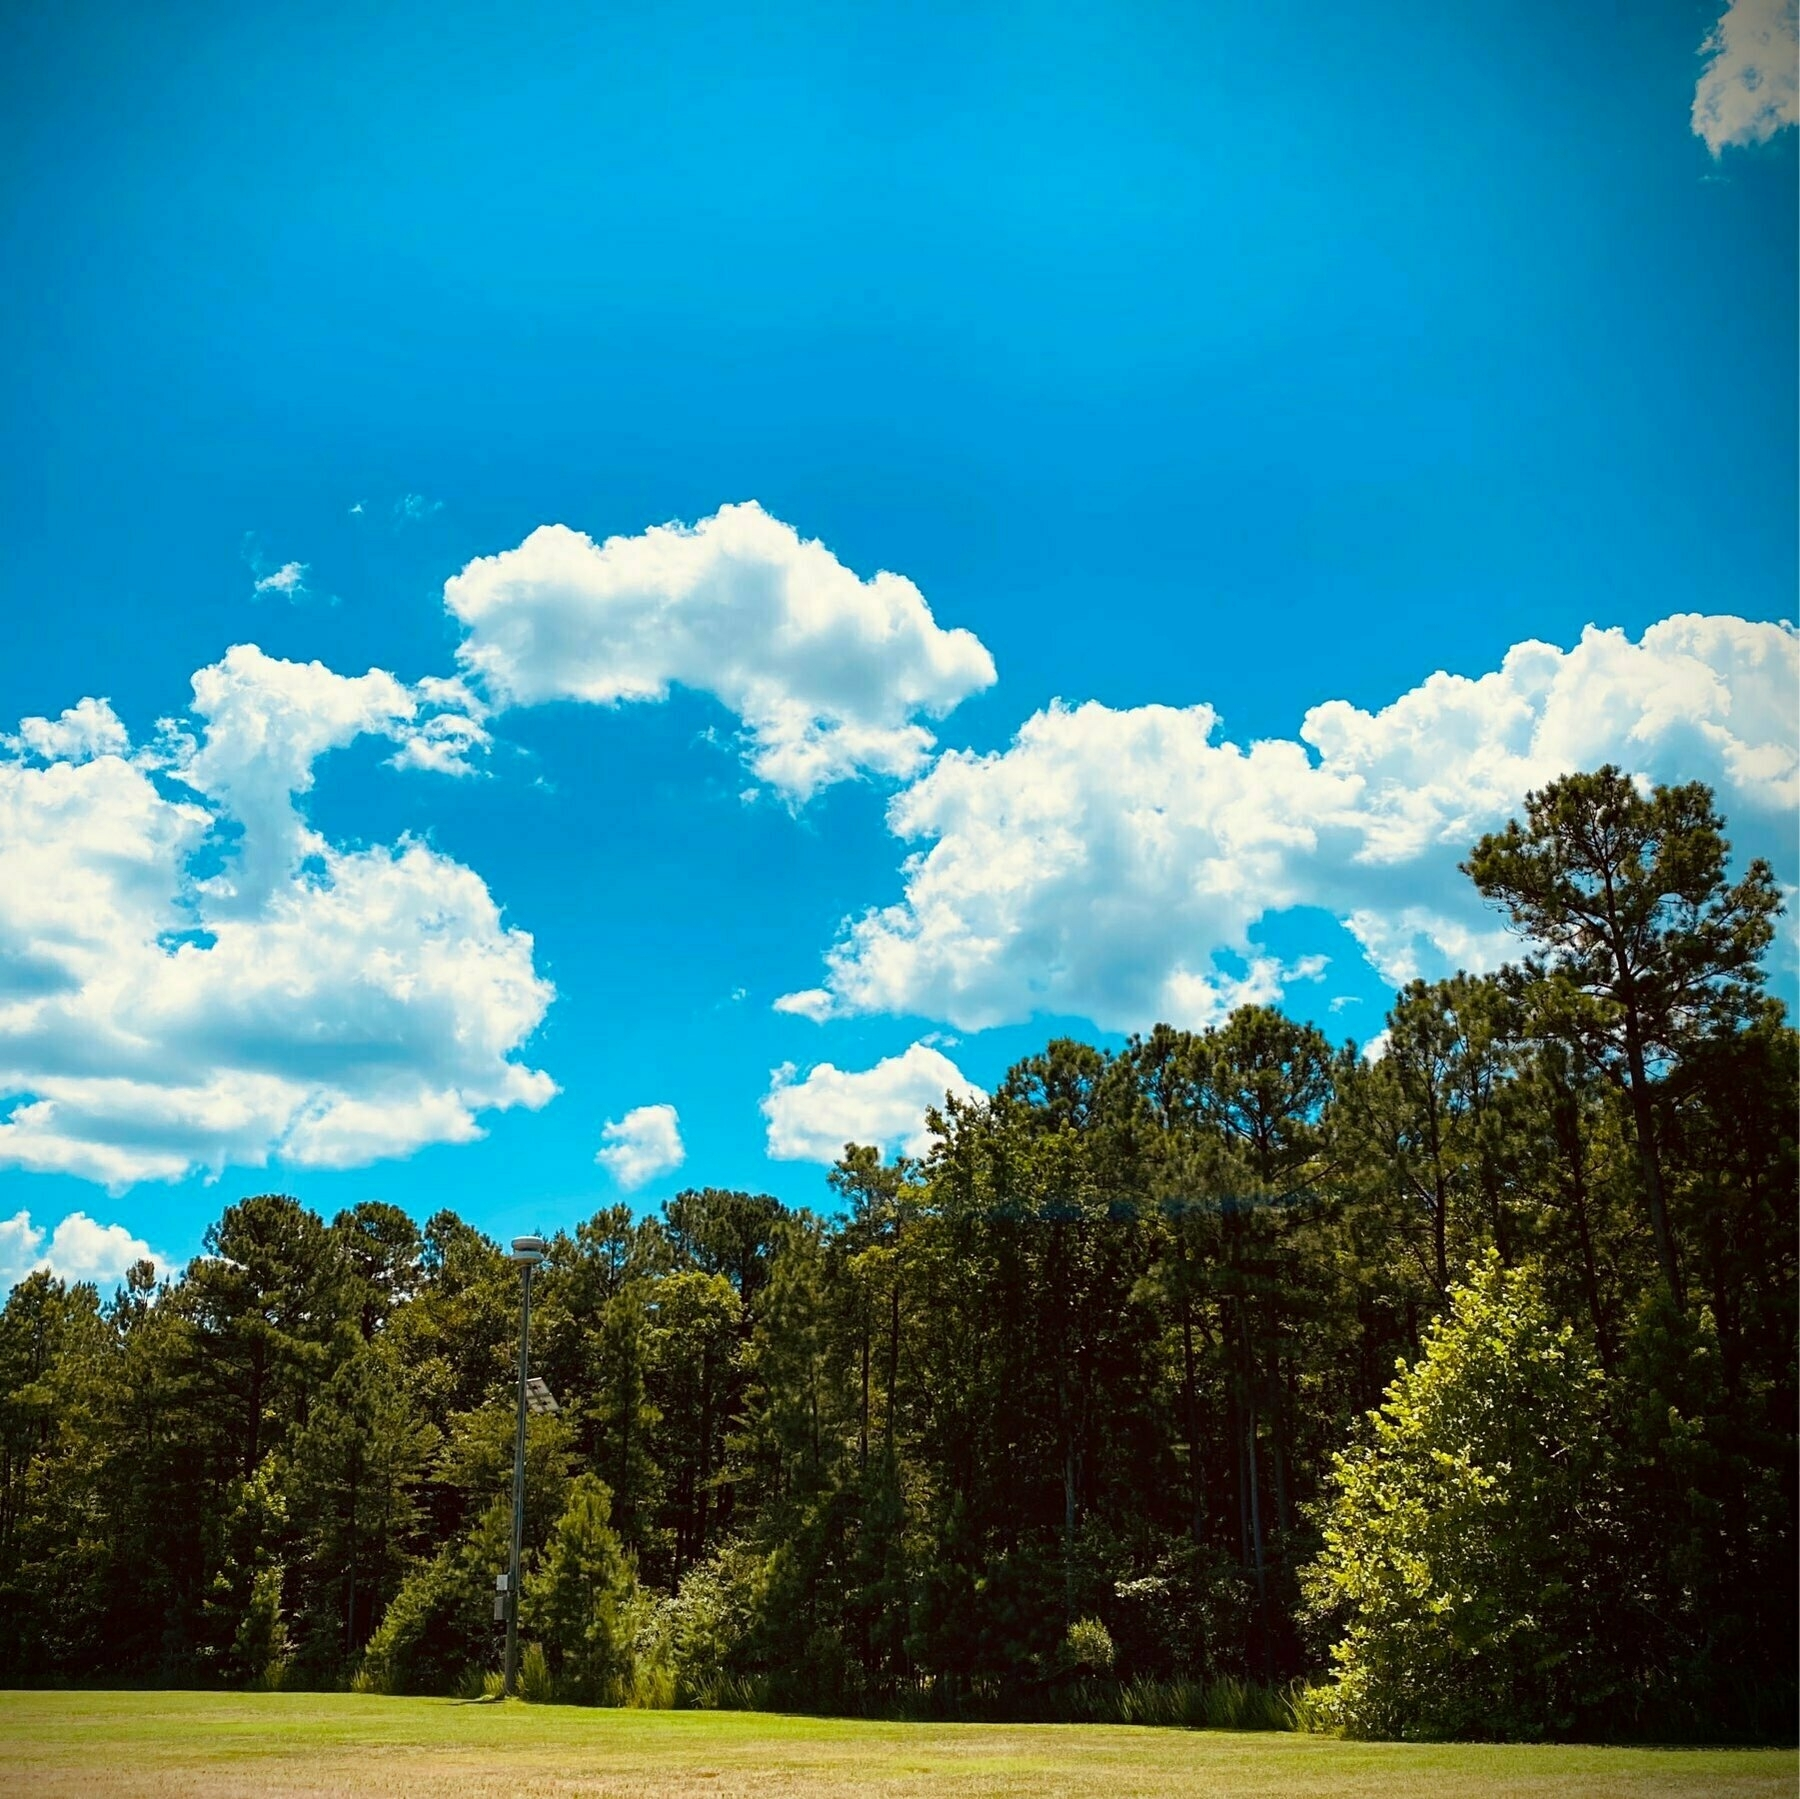 green trees with blue sky and white clouds